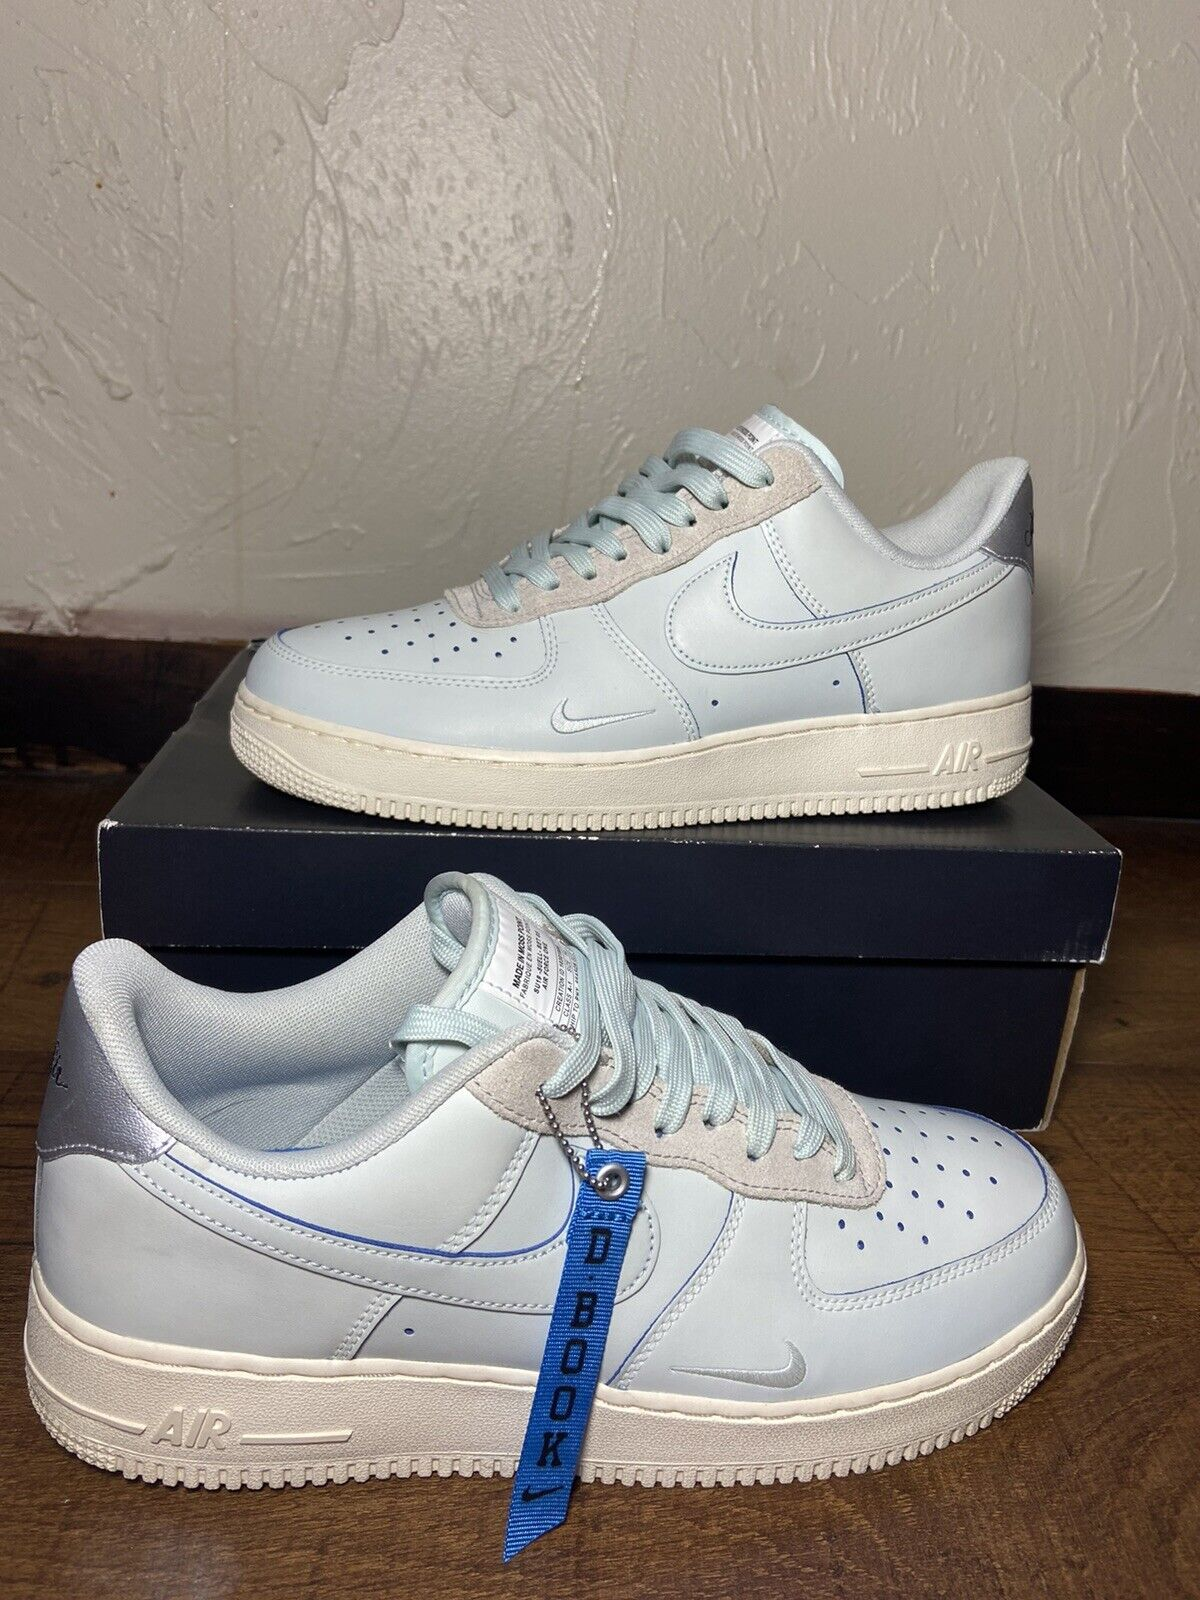 DEVIN BOOKER X AIR FORCE 1 LOW LV8 'MOSS POINT'